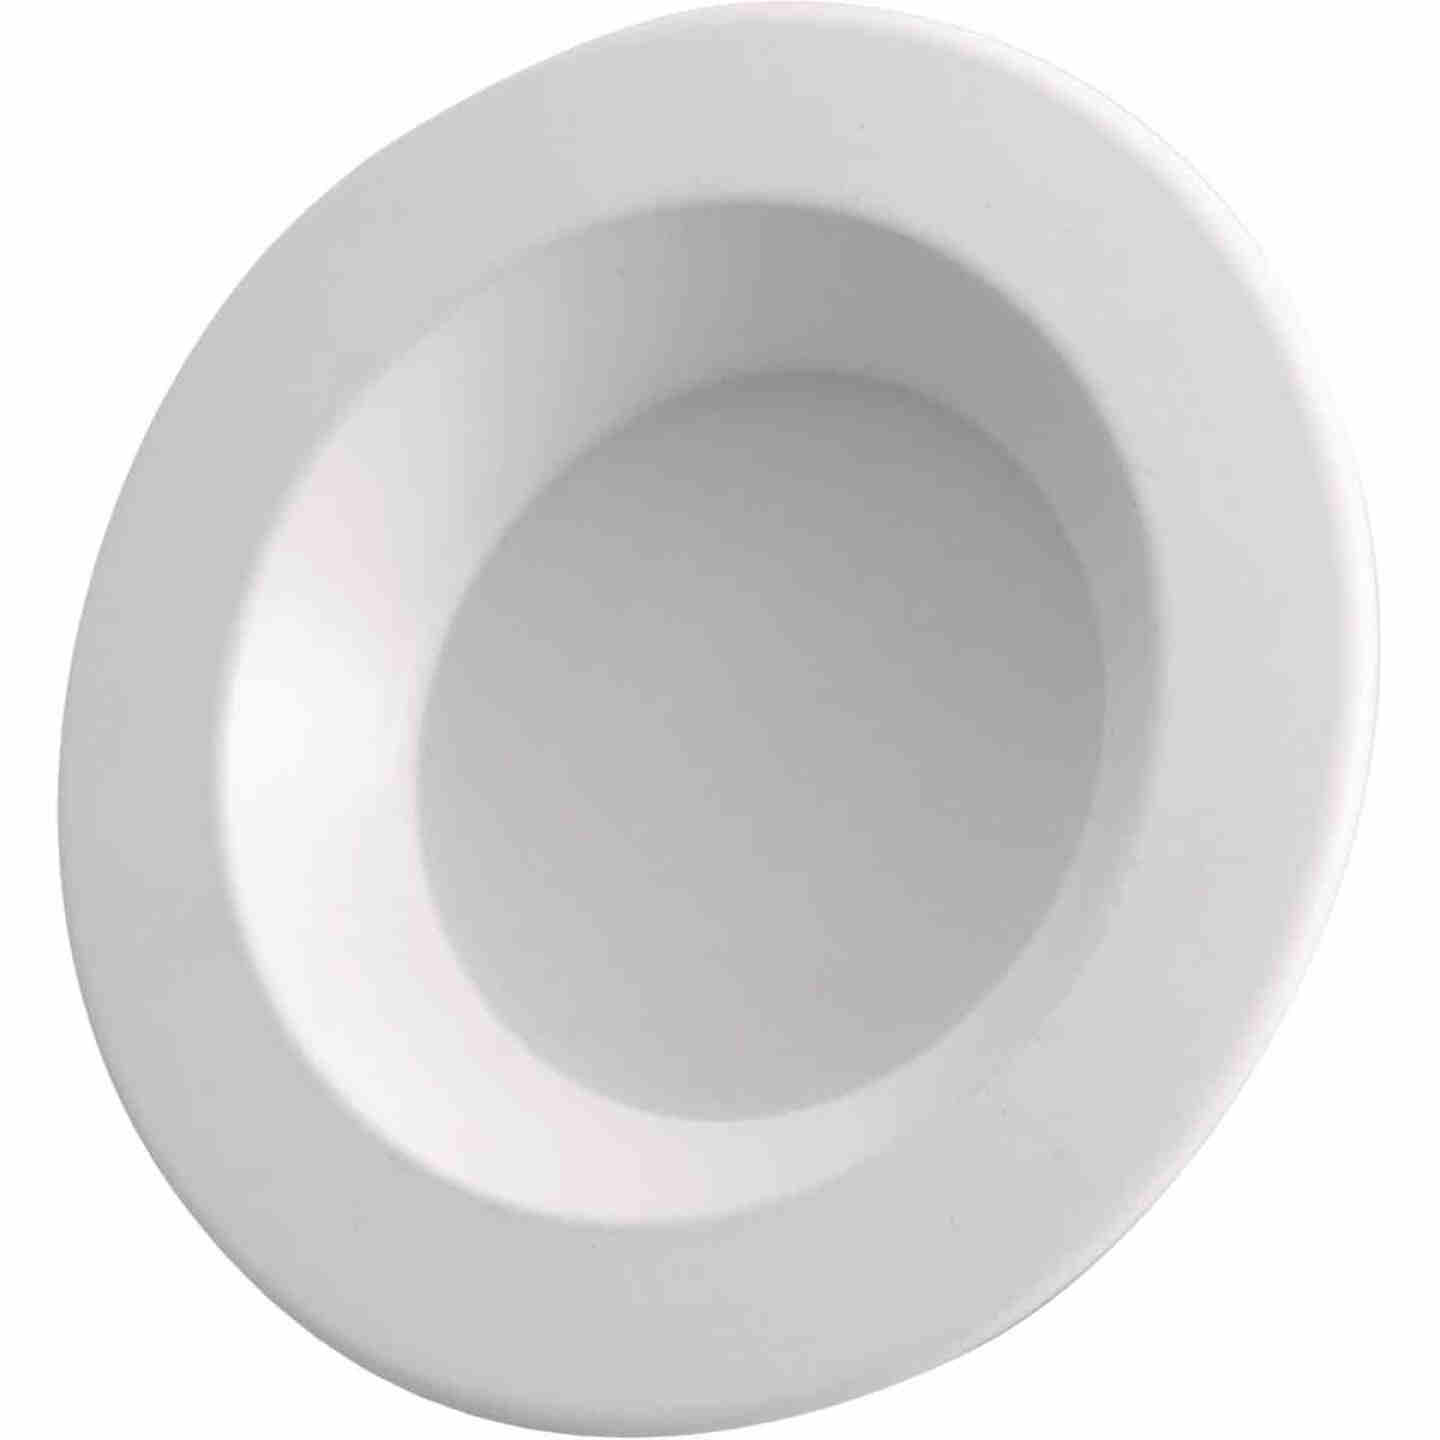 4 In. Retrofit IC Rated White LED CCT Tunable Down Light with Baffle Trim Image 5